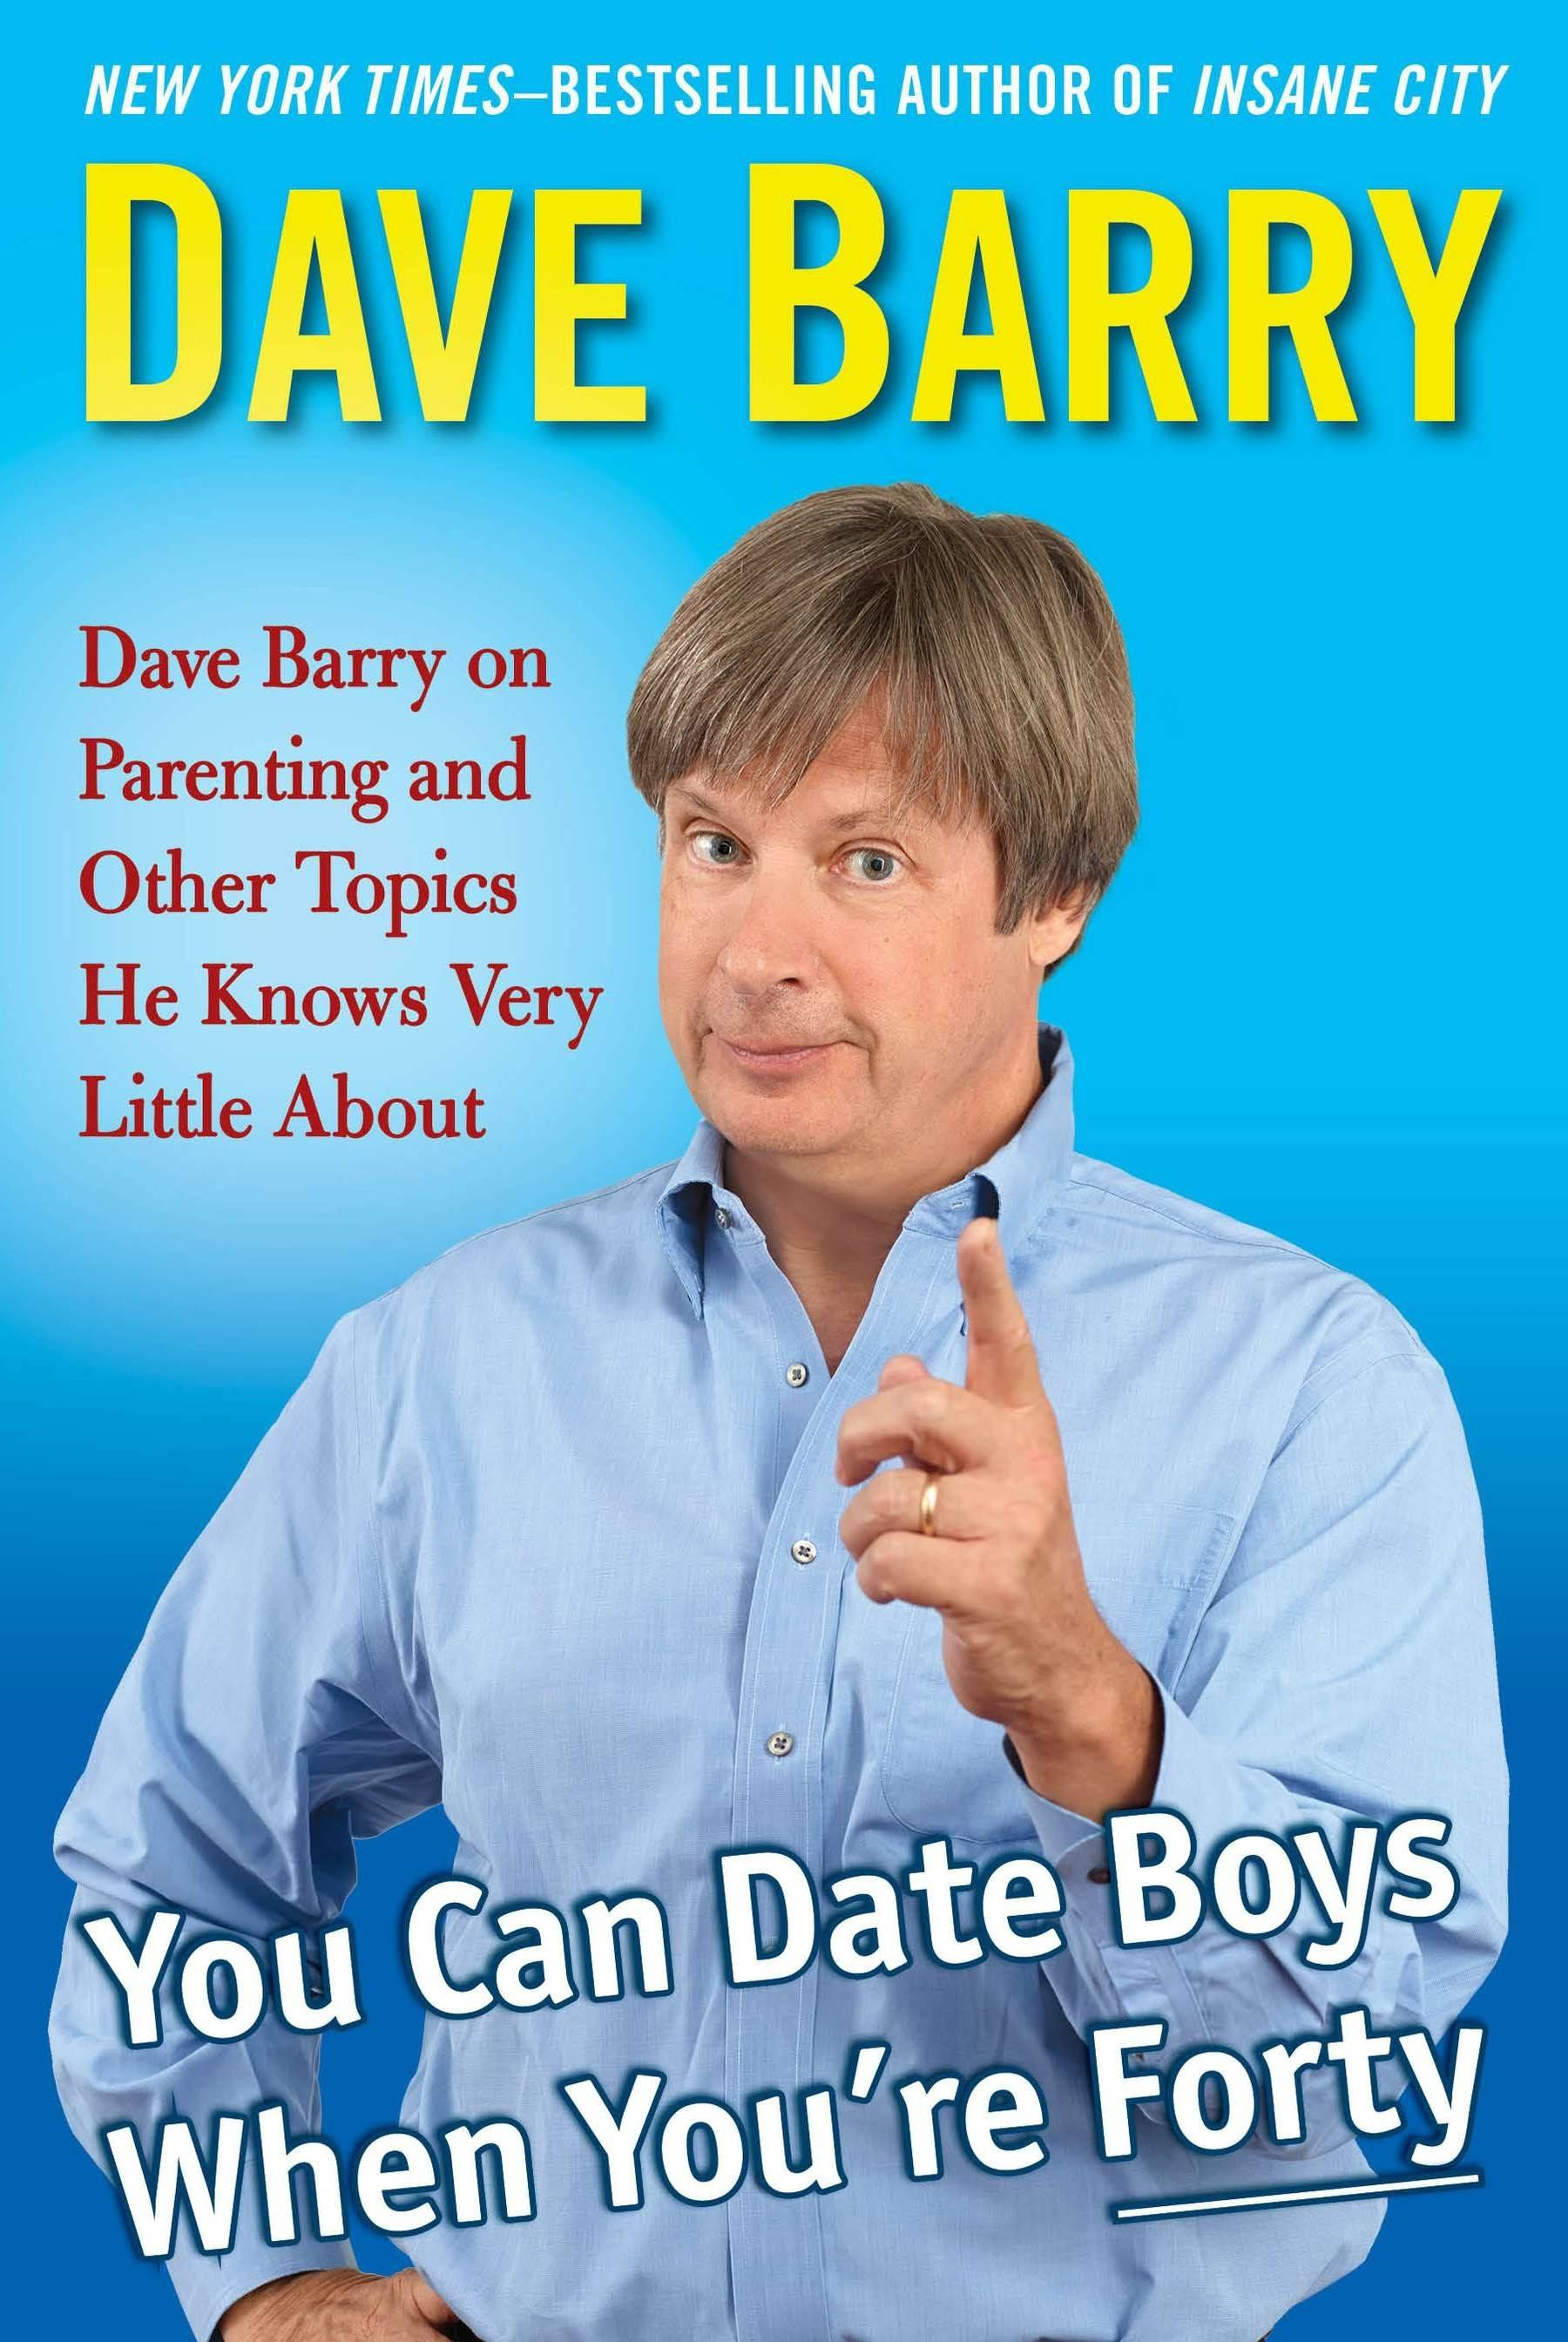 """You Can Date Boys When You're Forty"" by Dave Barry (2014, Putnam), $26.95, 224 pages."